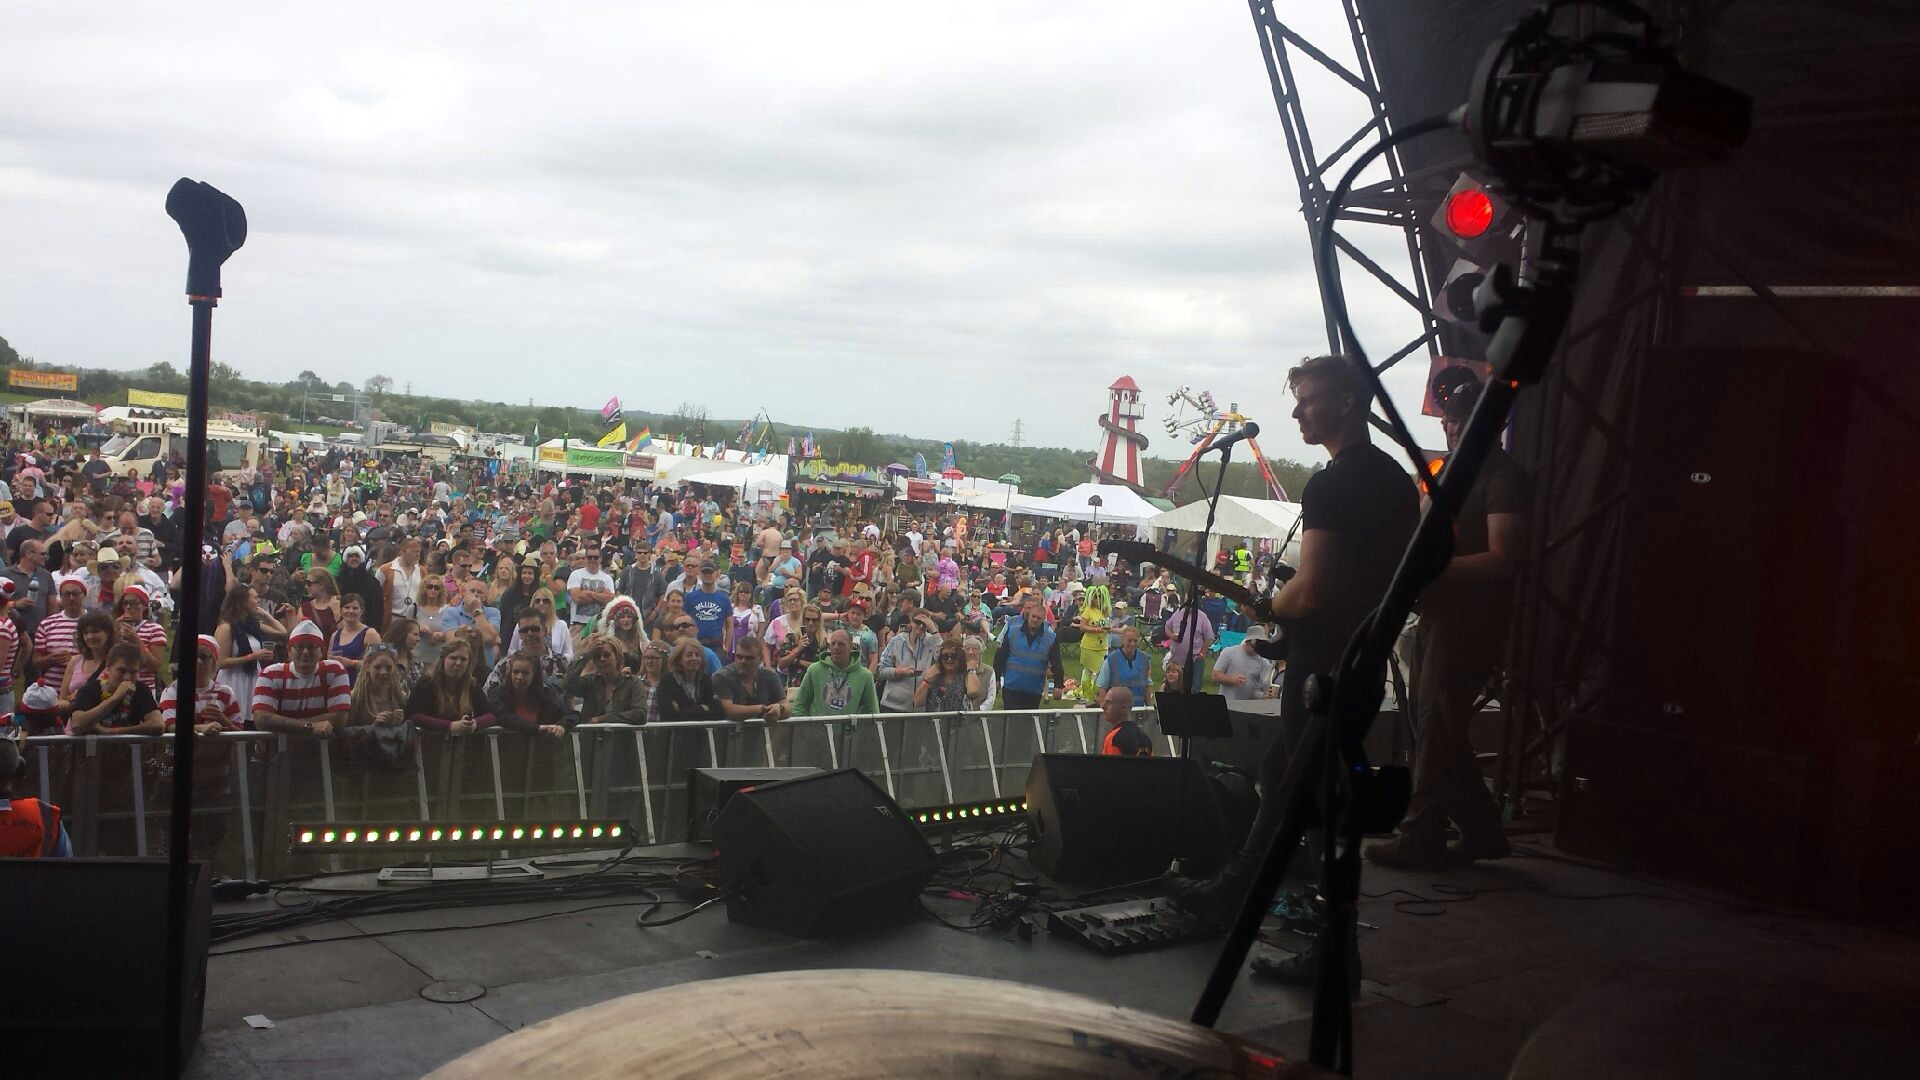 Me onstage at Glasto!